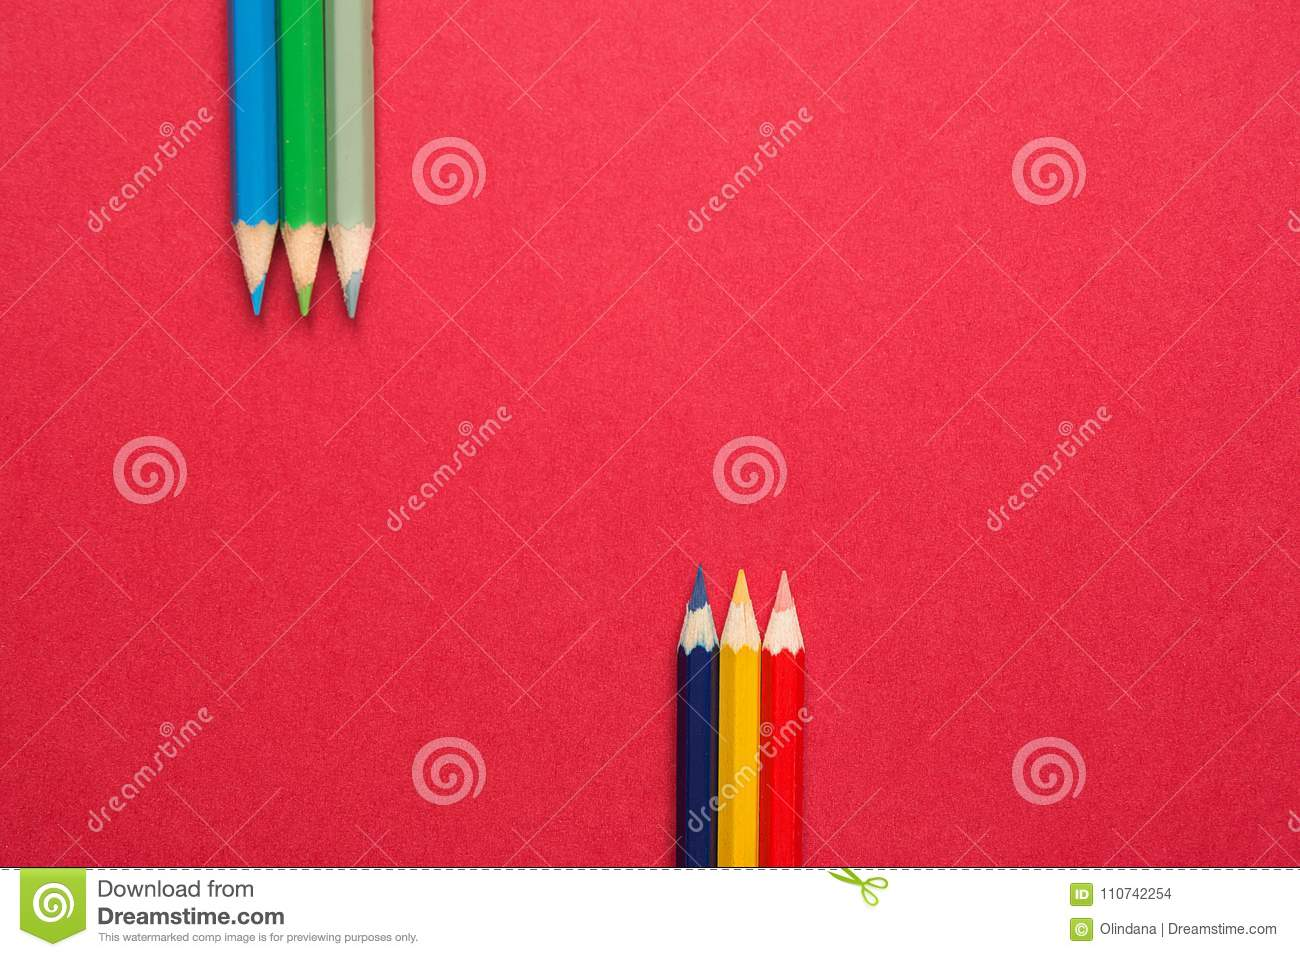 e84df6e6b97 Upper And Lower Rows Of Multicolored Pencils In Parallel Position ...